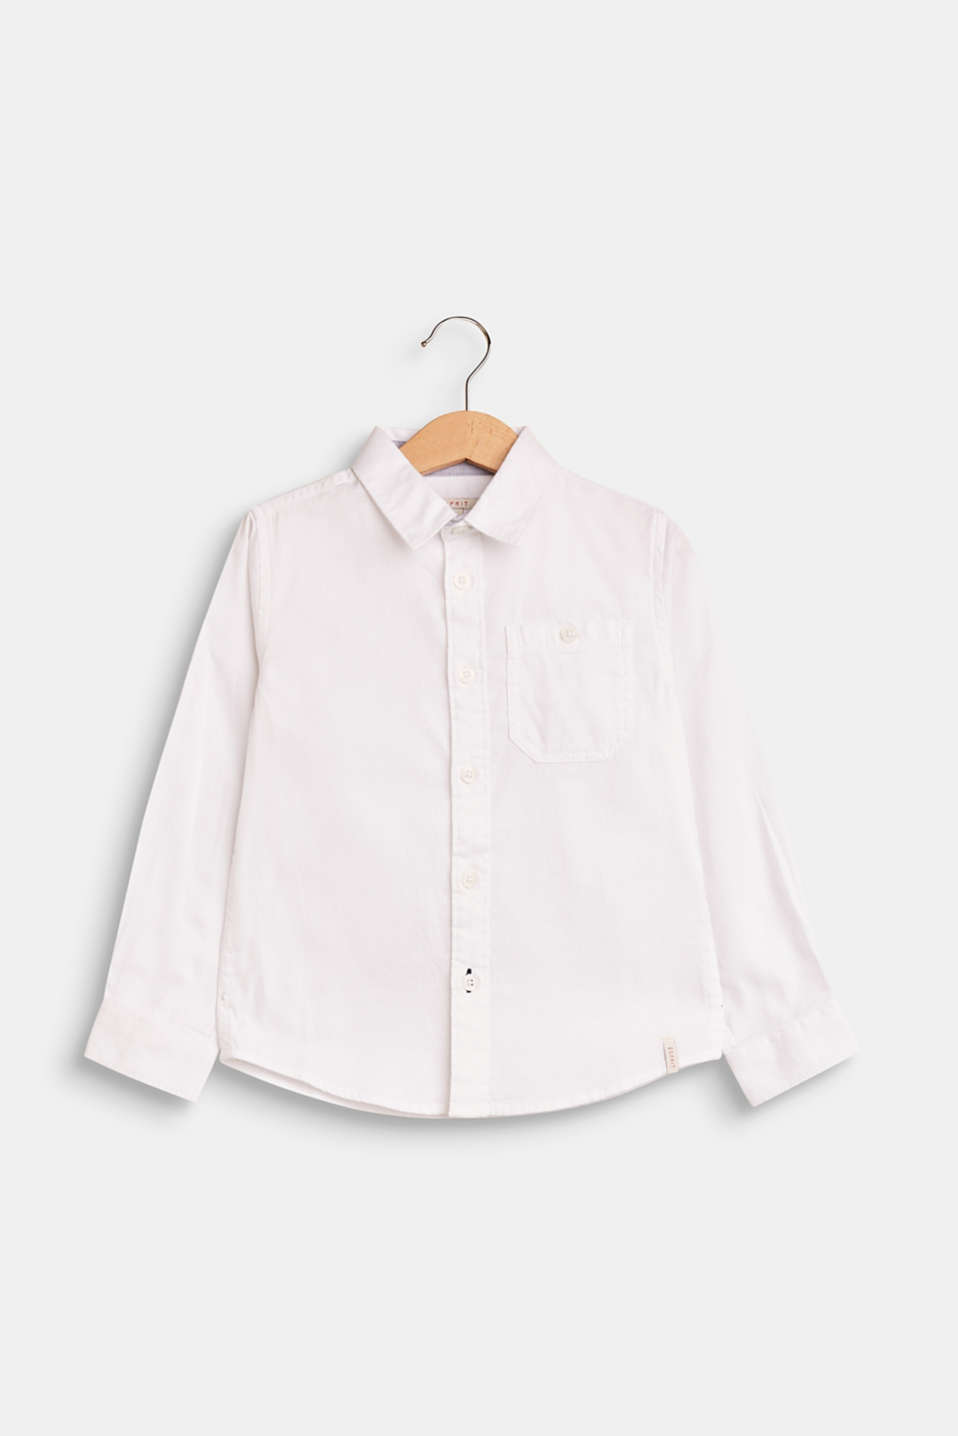 Esprit - Textured shirt, 100% cotton